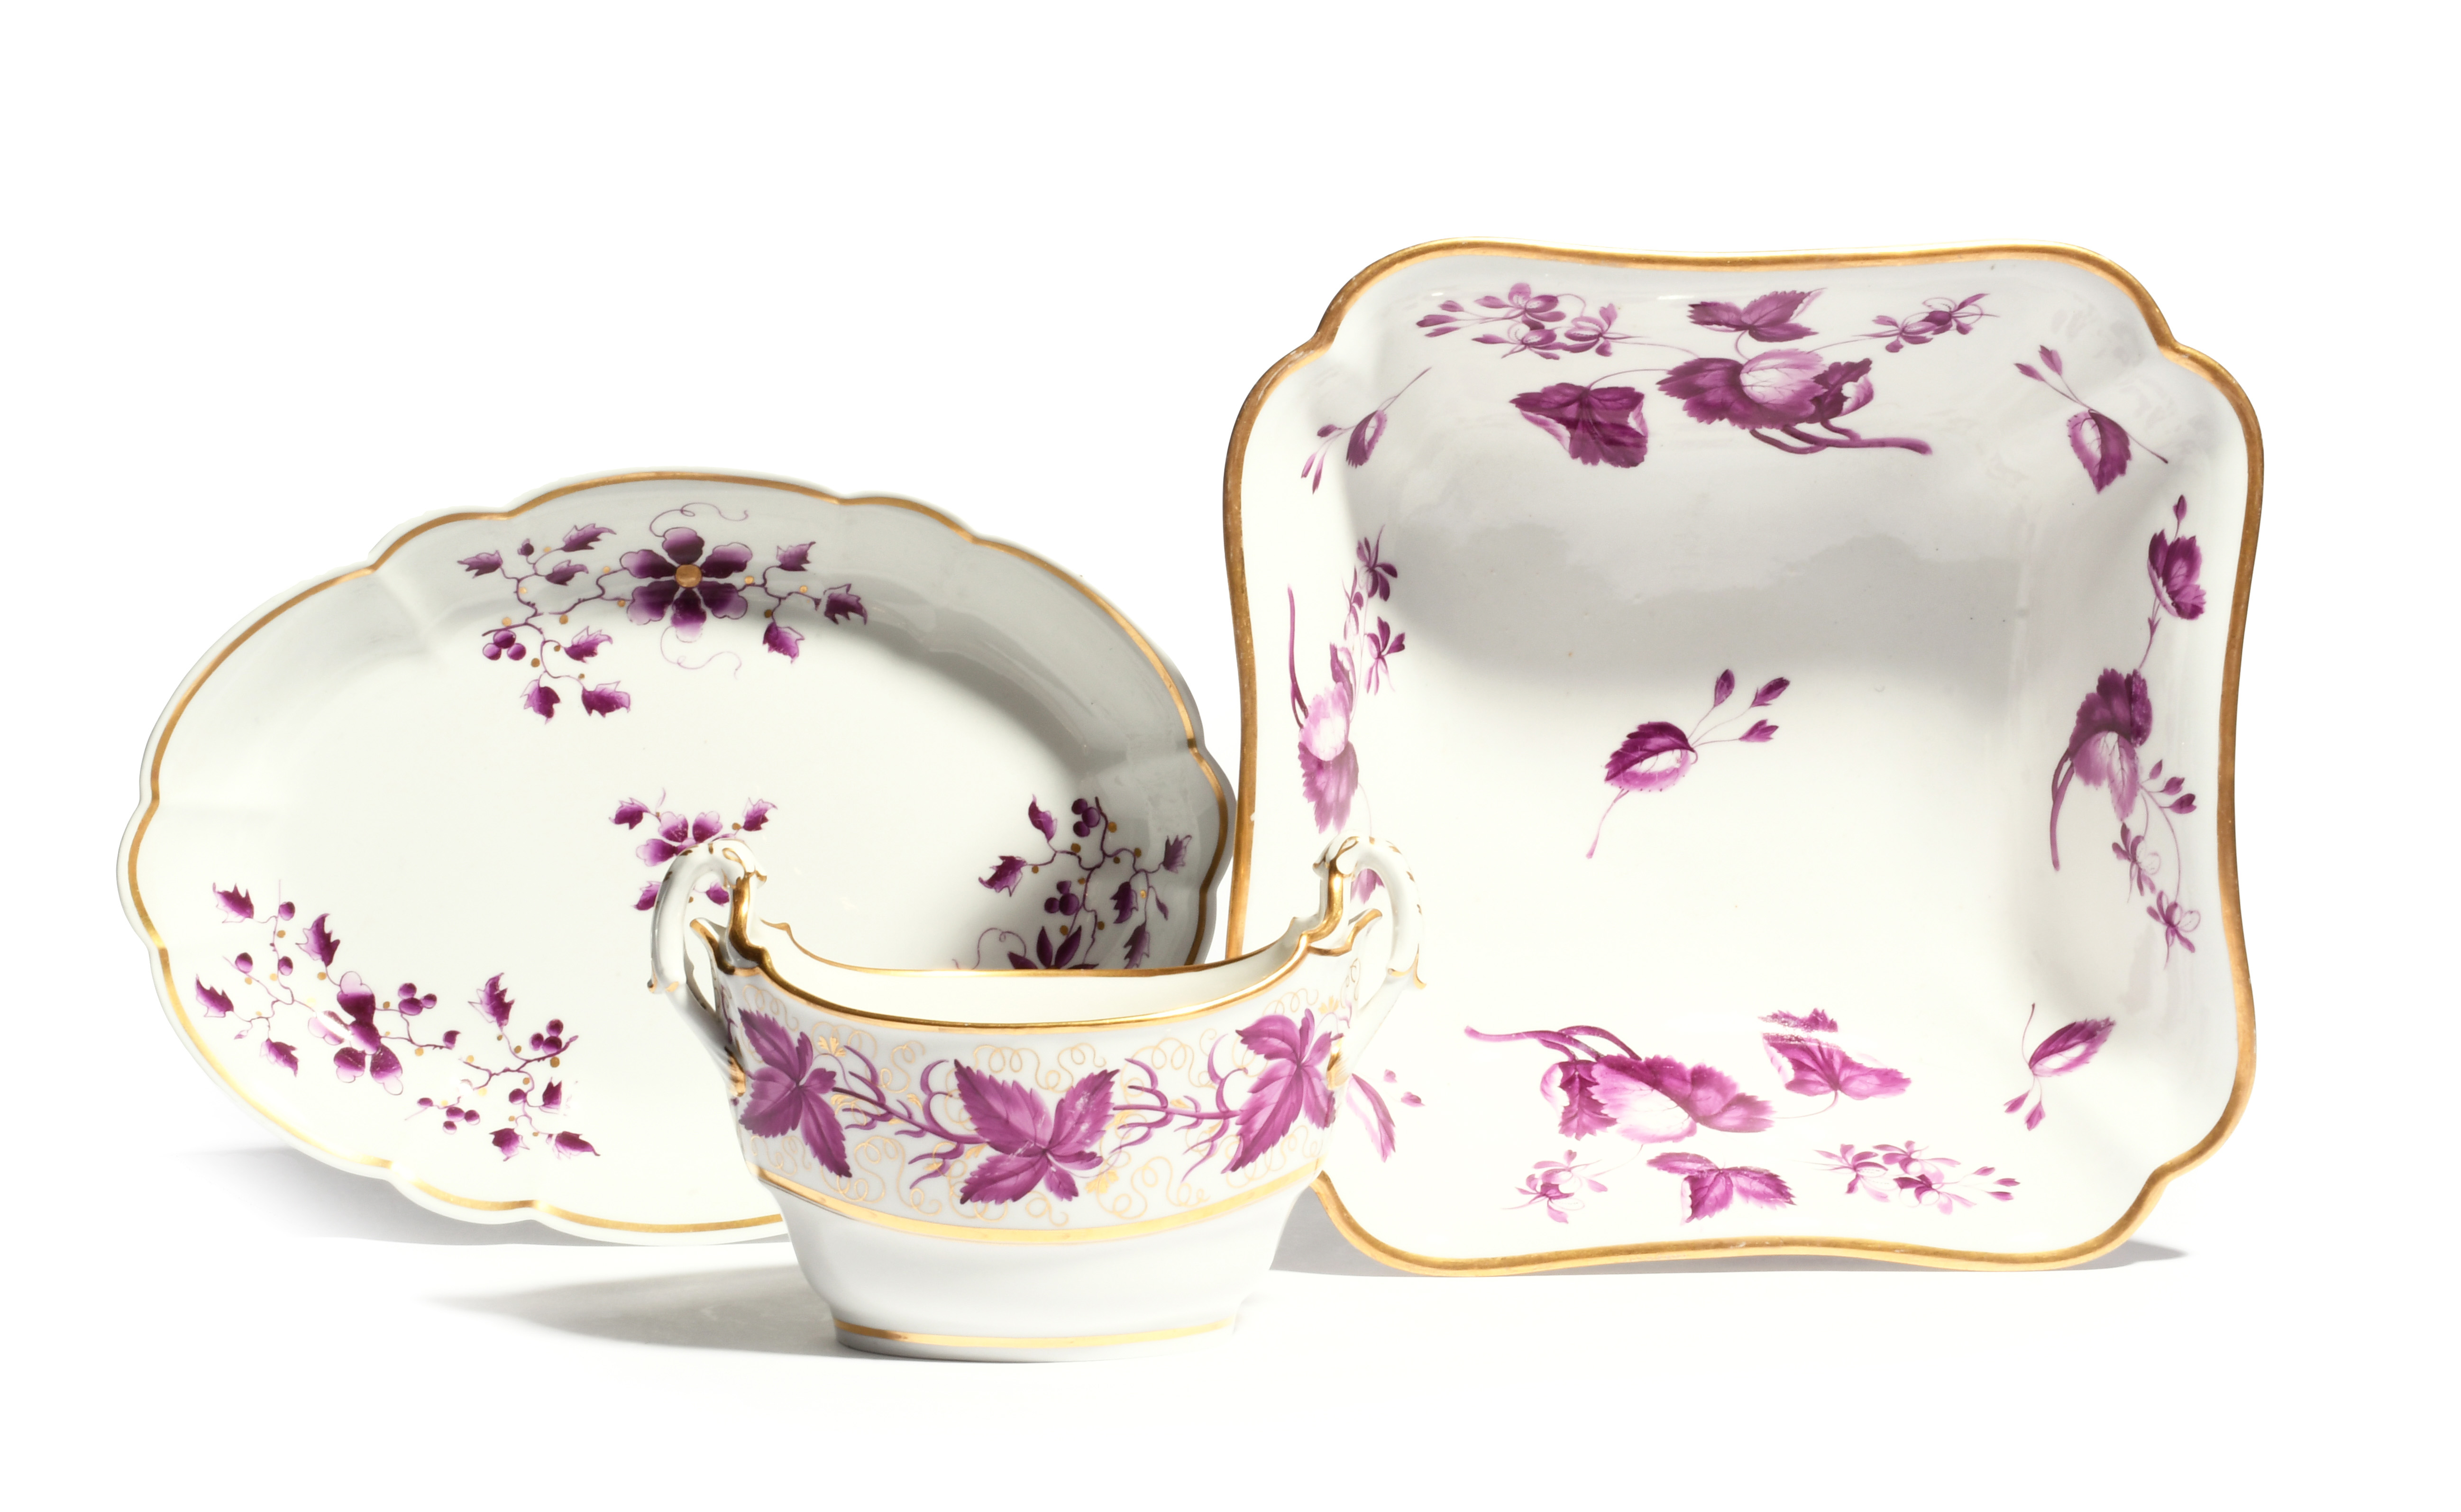 A large Barr Flight and Barr (Worcester) square bowl c.1800, painted in purple monochrome with leafy